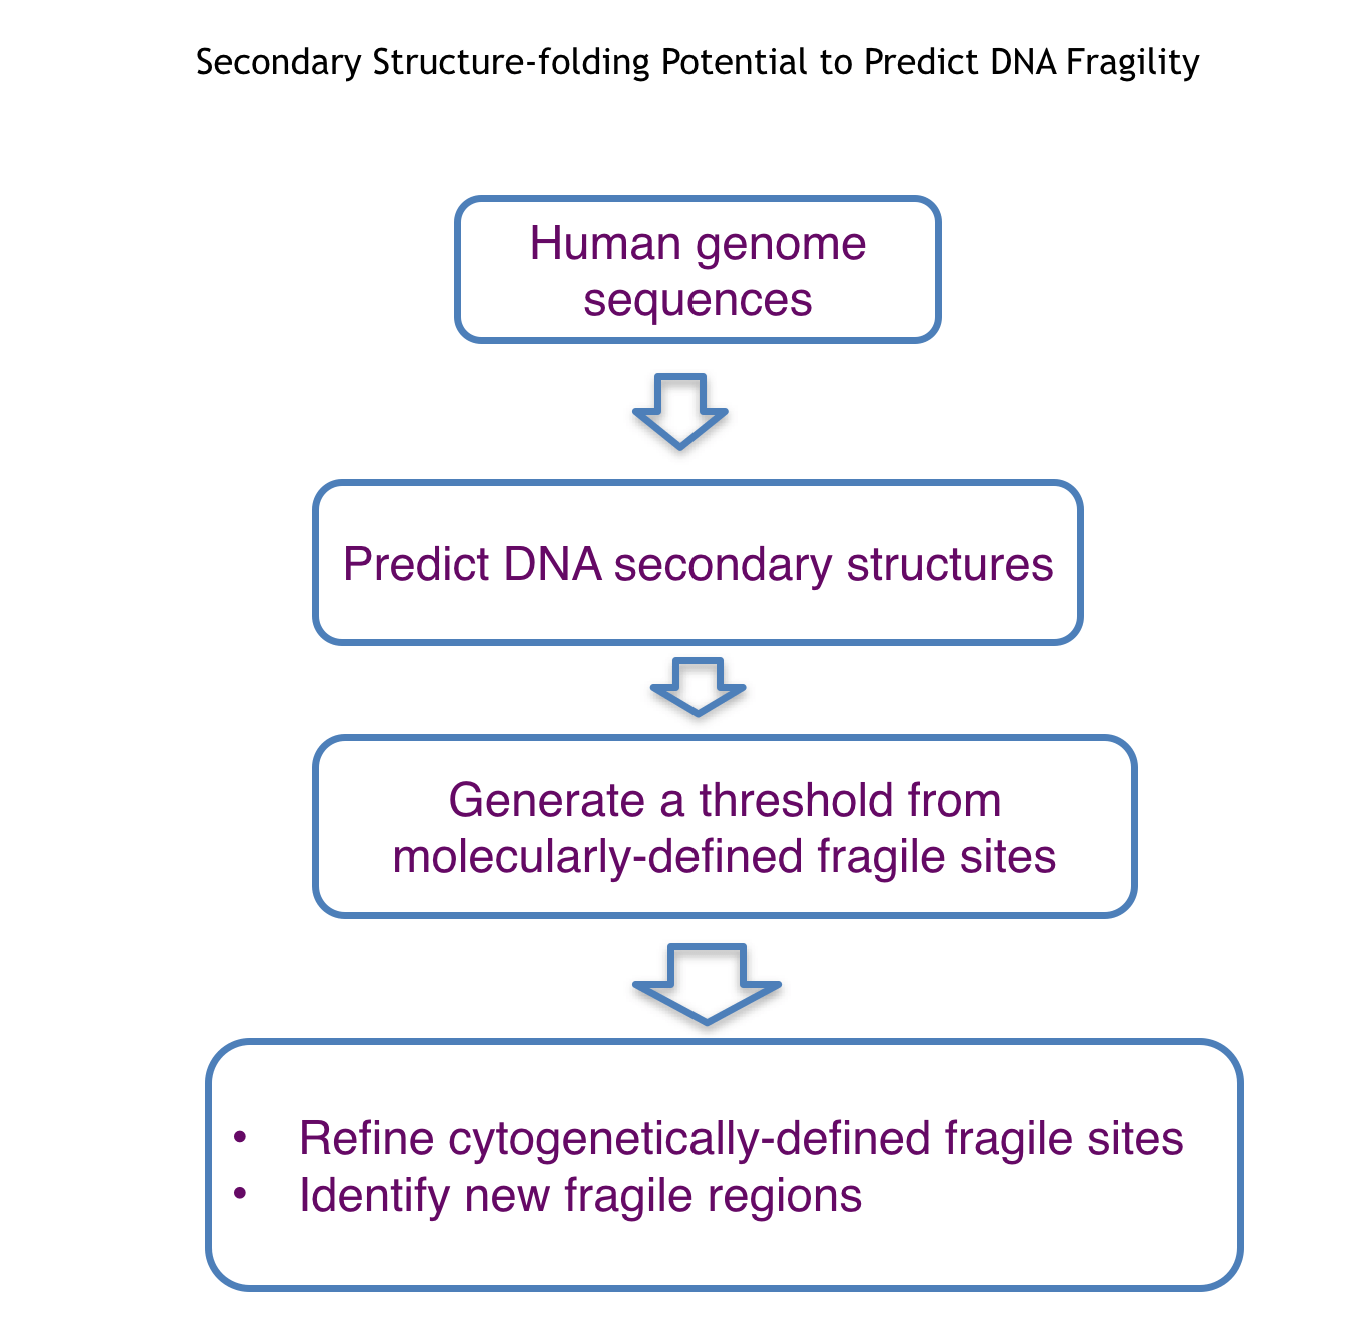 Flow chart depicting the process of using human genome sequences to predict DNA secondary structures that can then be used to generate a threshold from molecularly-defined fragile sites. This threshold can then be used to refine cytogenetically-defined fragile sites and to identify new fragile regions.s.